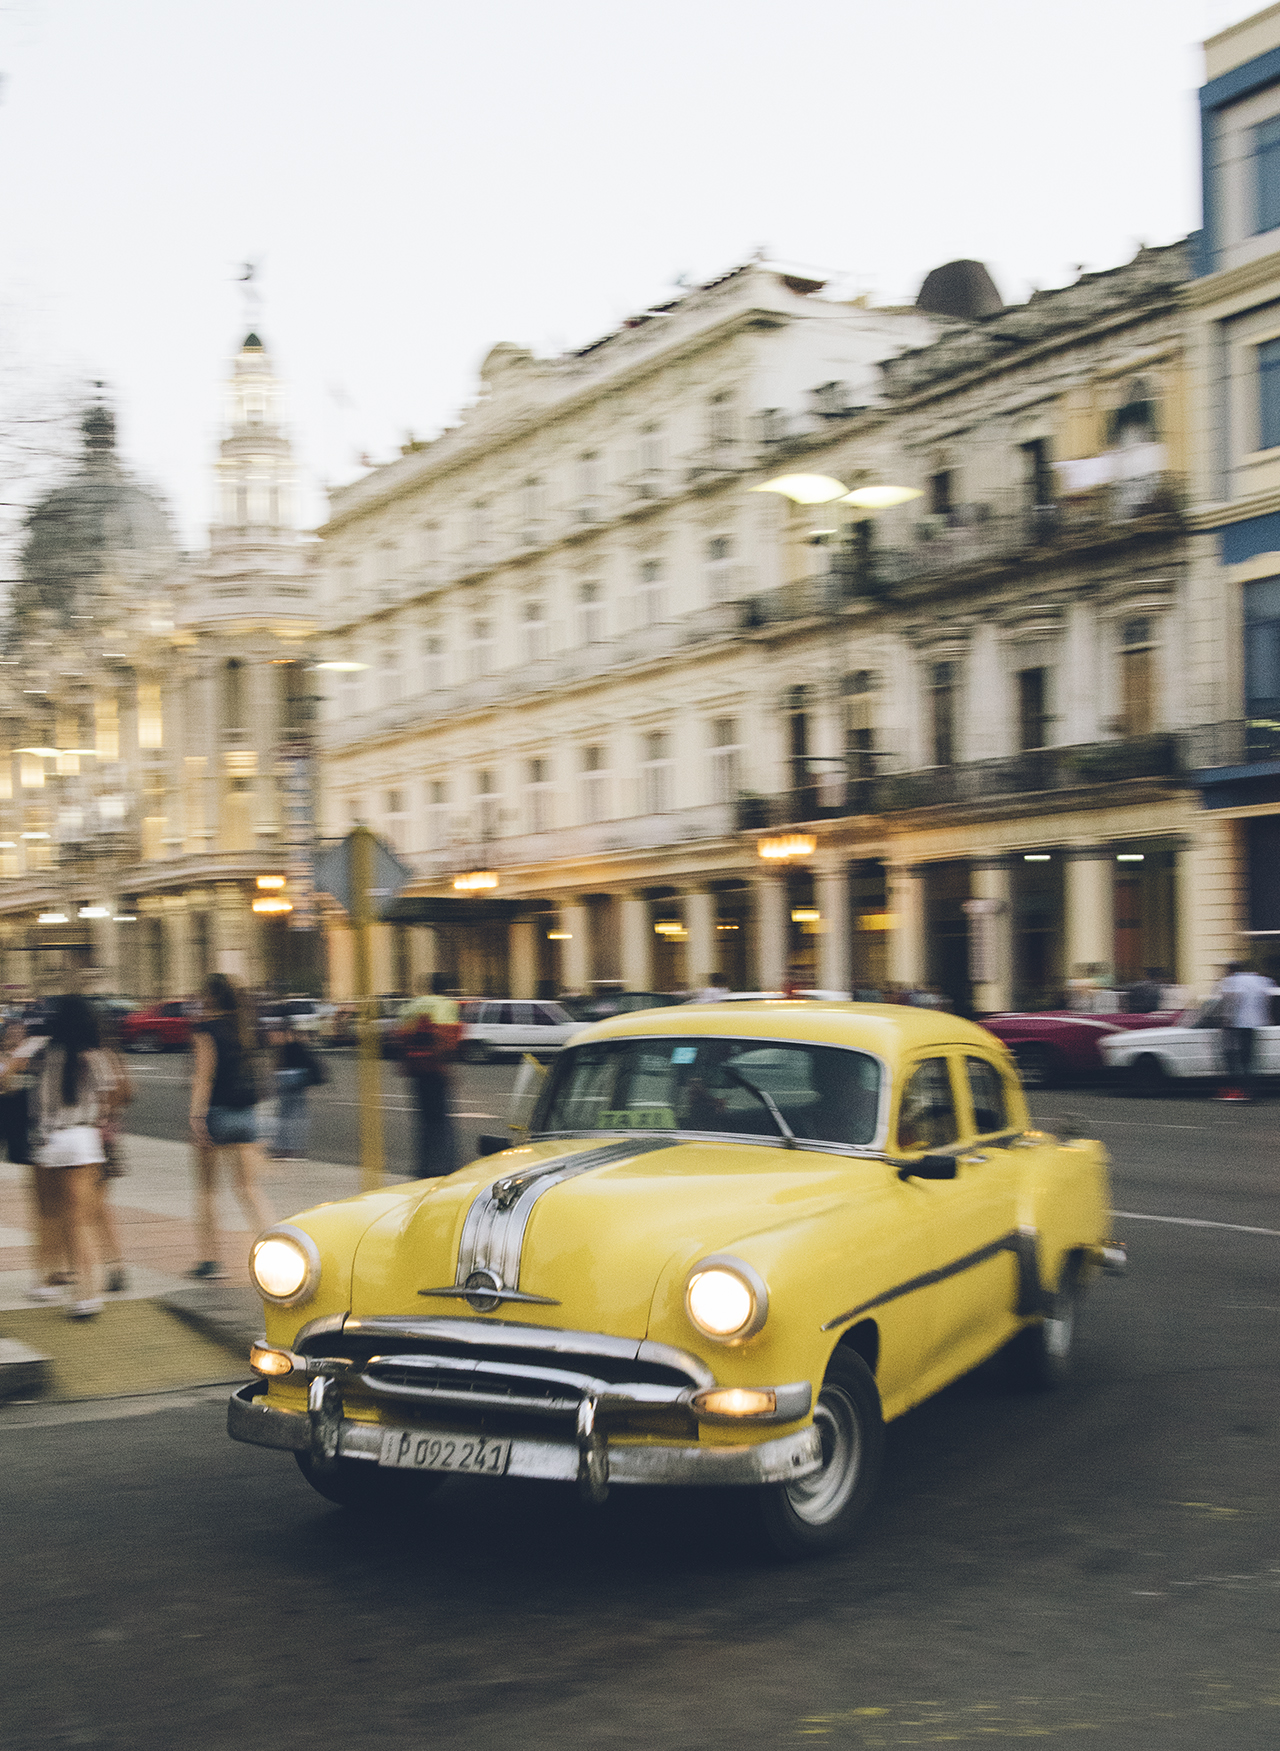 An early '50s Oldsmobile taxi makes the rounds near Havana's capitol building.